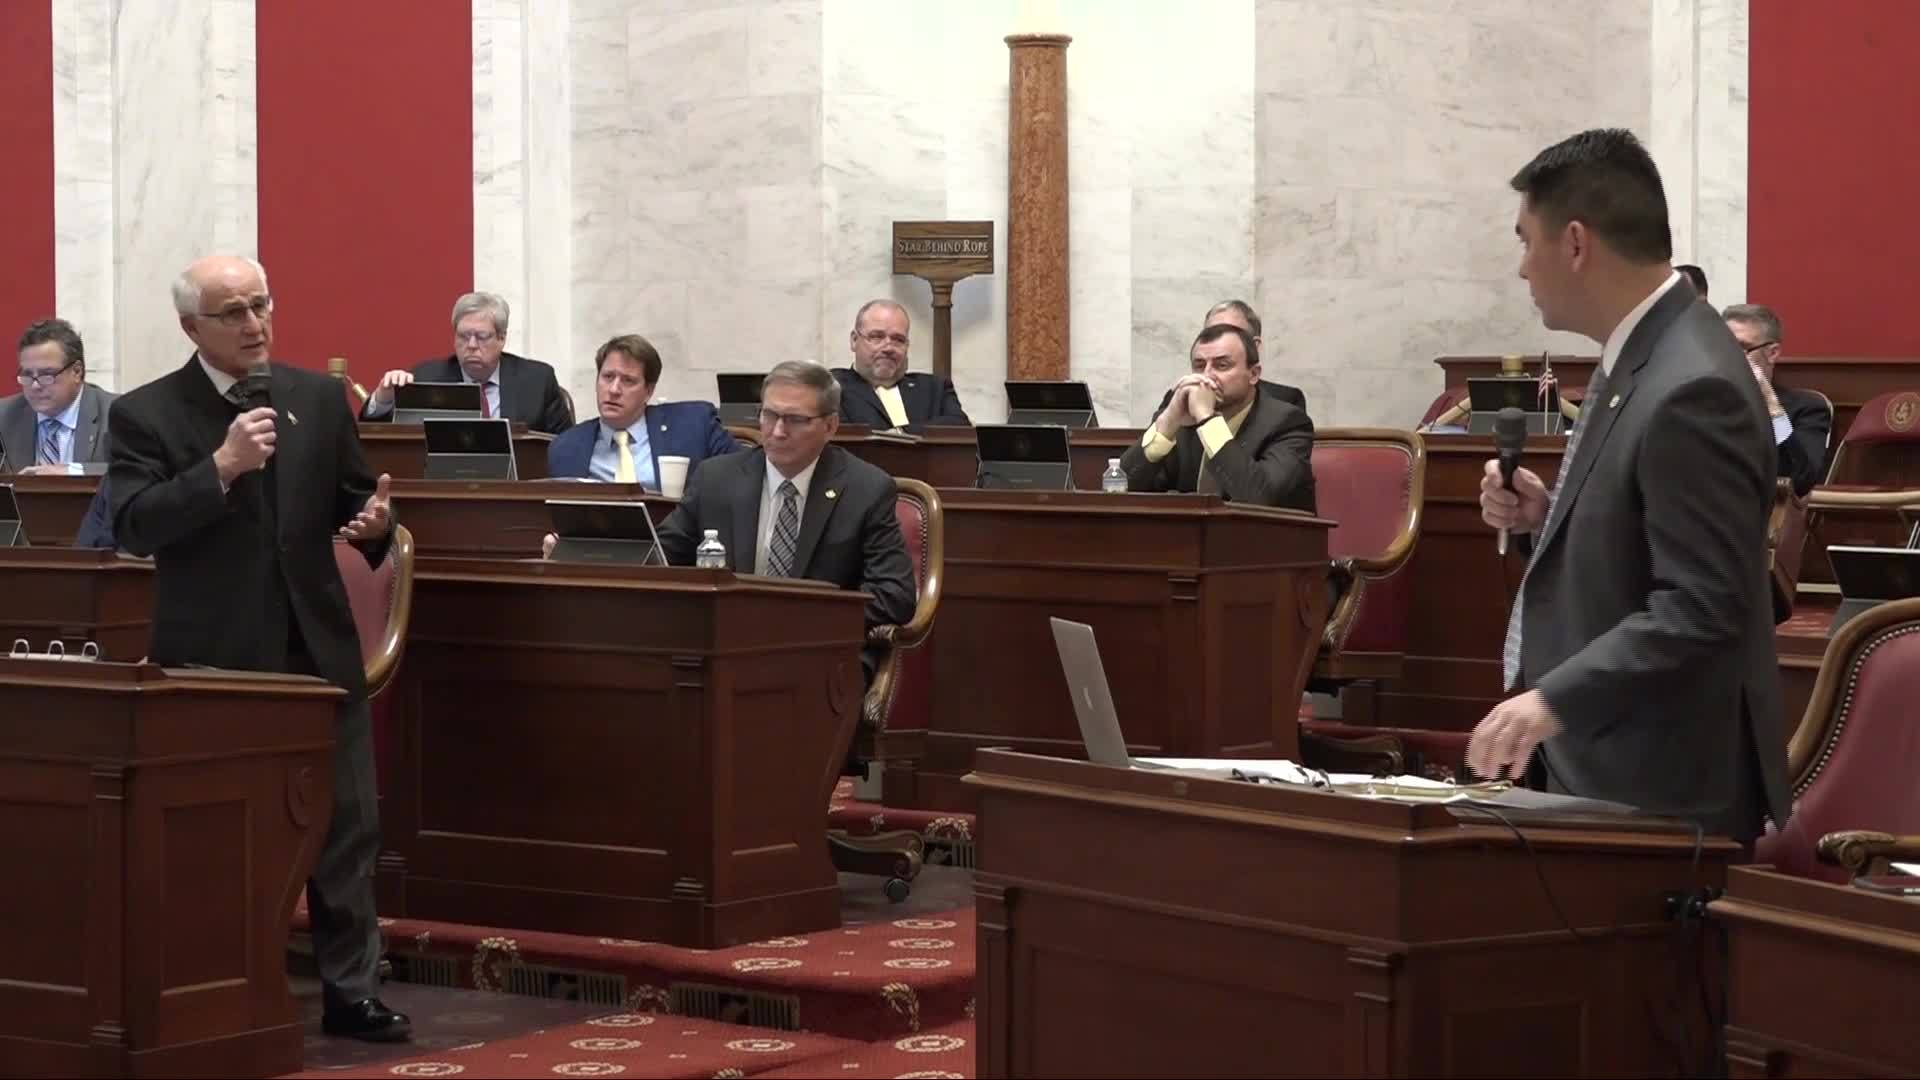 West_Virginia_Education_Bill_Stirs_Up_Co_6_20190129001557-794298030